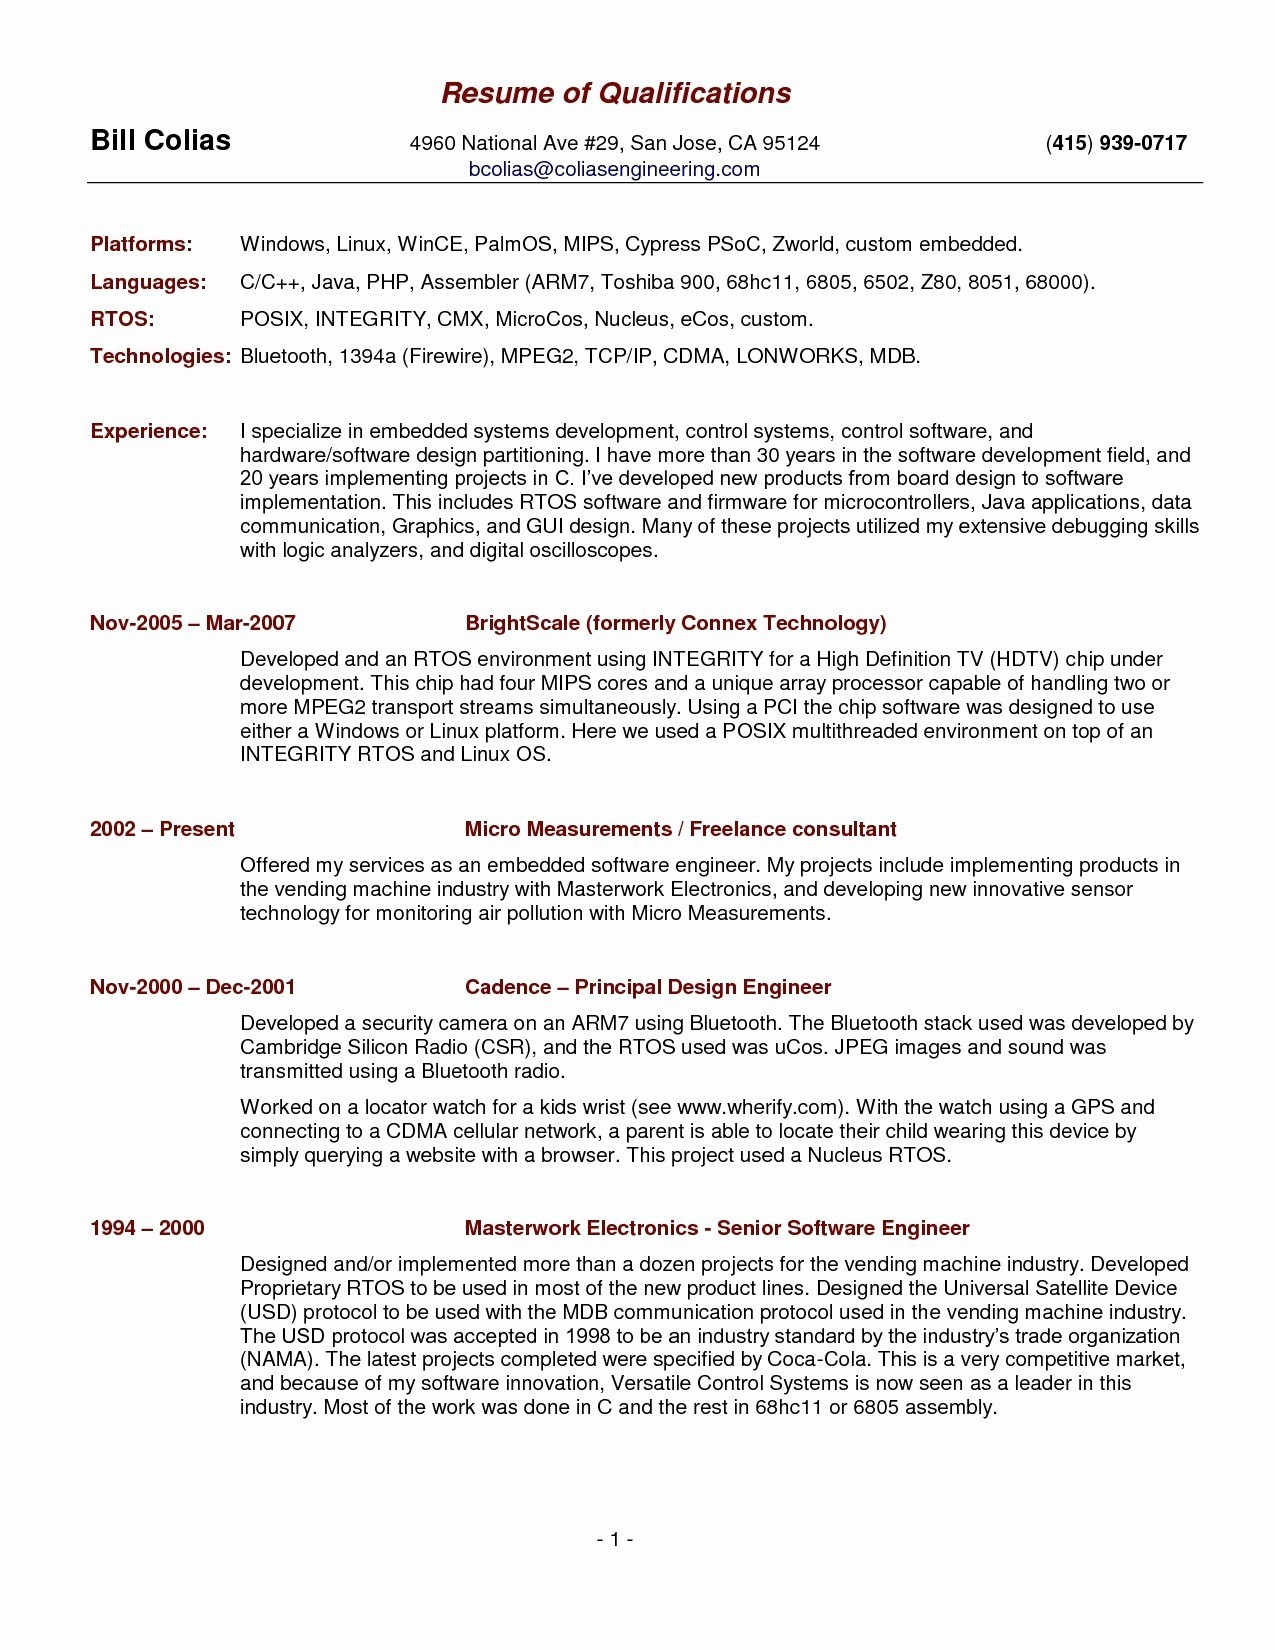 Free Resume Template Download - Free Resume Download Elegant Lovely Pr Resume Template Elegant